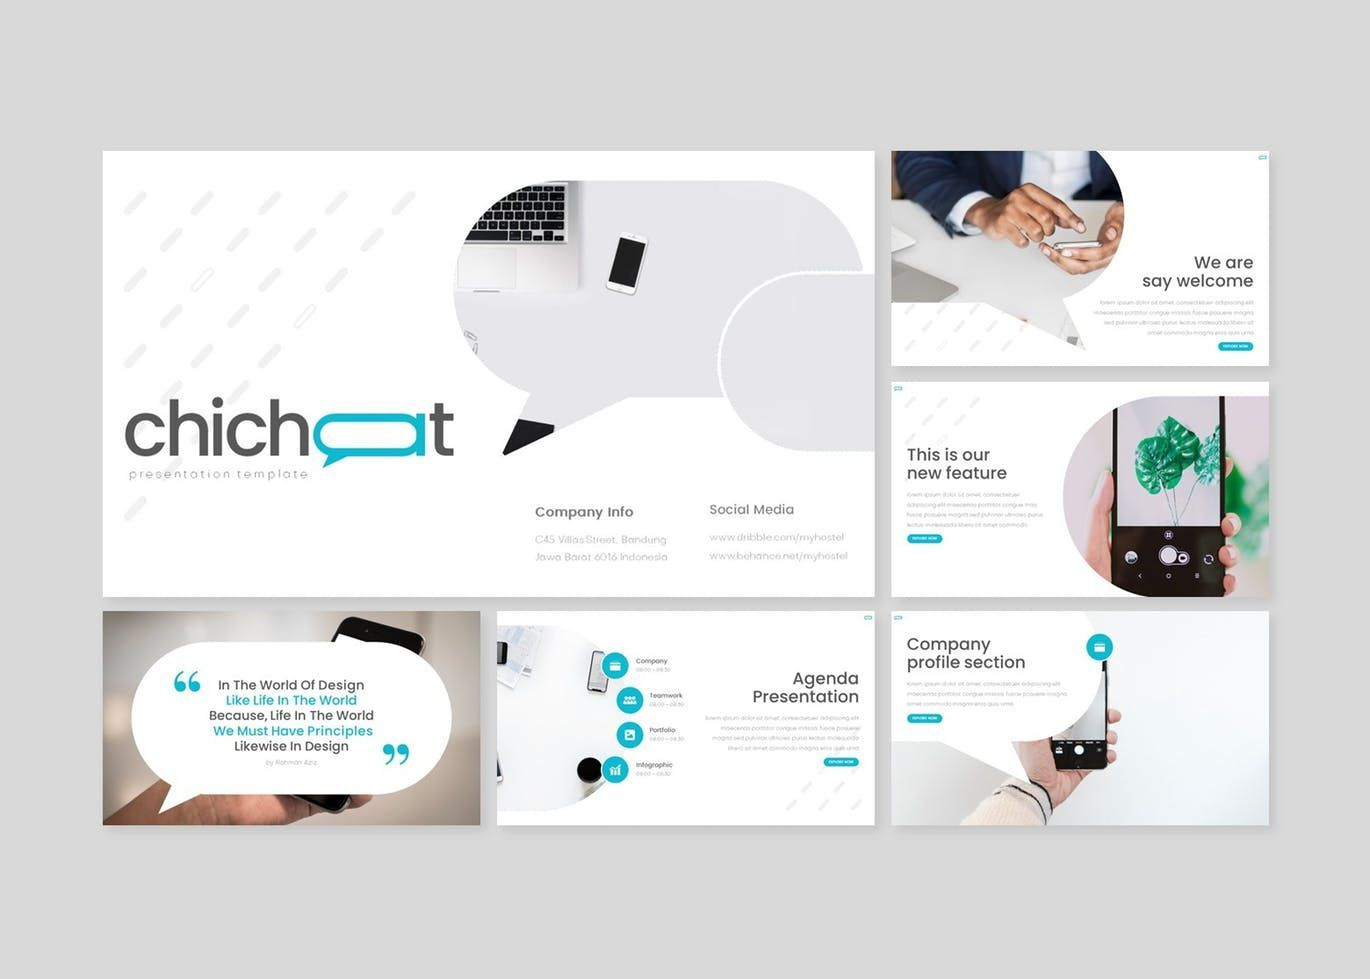 Chichat - PowerPoint Template, Slide 2, 08636, Presentation Templates — PoweredTemplate.com